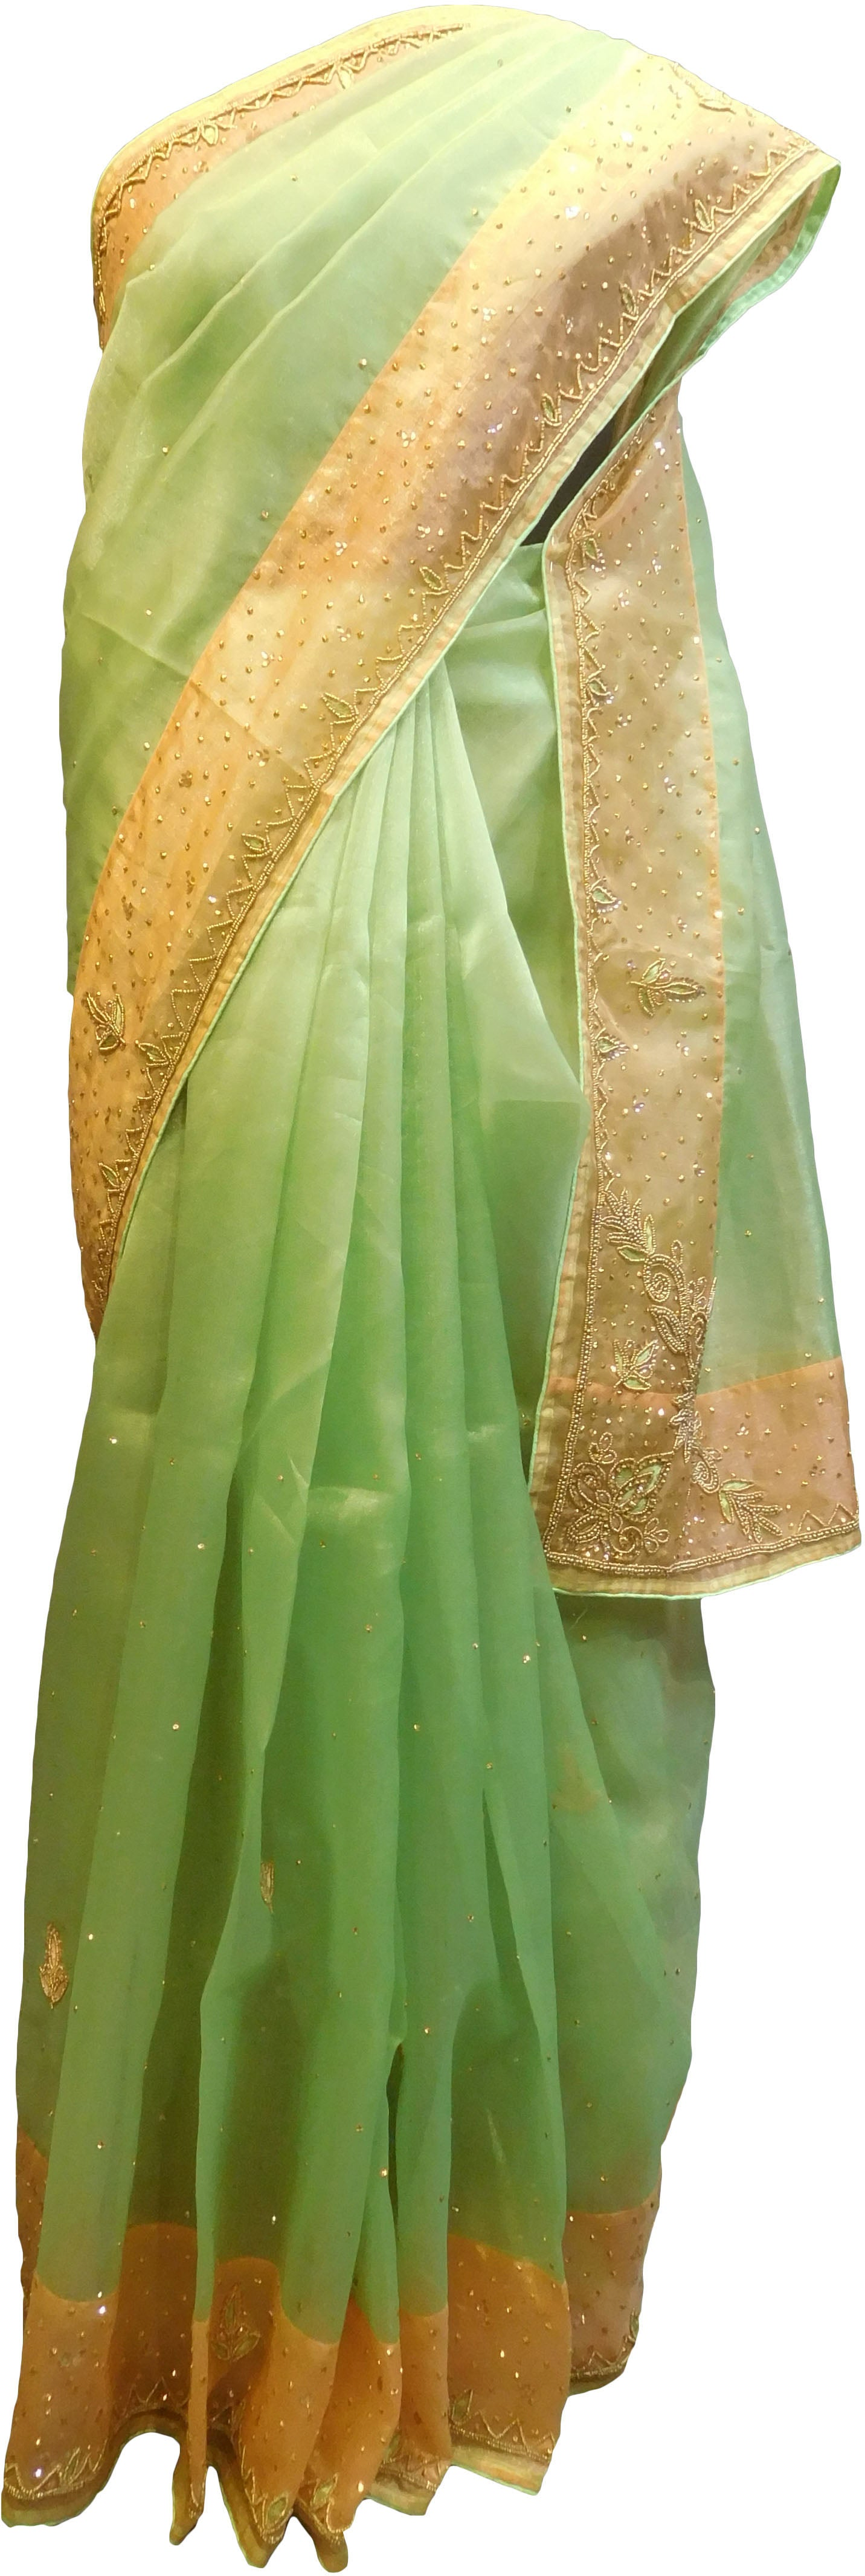 SMSAREE Green & Peach Designer Wedding Partywear Organza Stone Thread & Beads Hand Embroidery Work Bridal Saree Sari With Blouse Piece F095